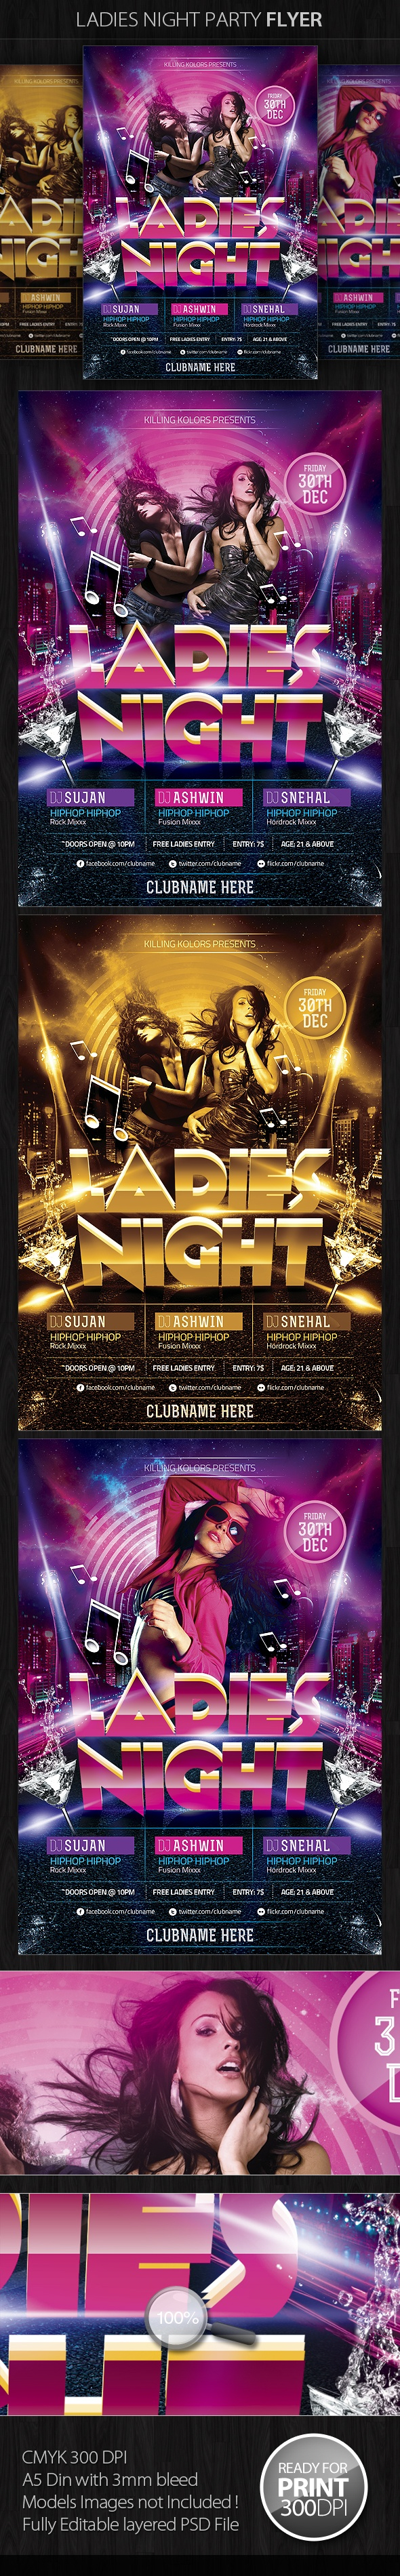 Ladies Night Party Flyer by Mahantesh Nagashetty, via Behance